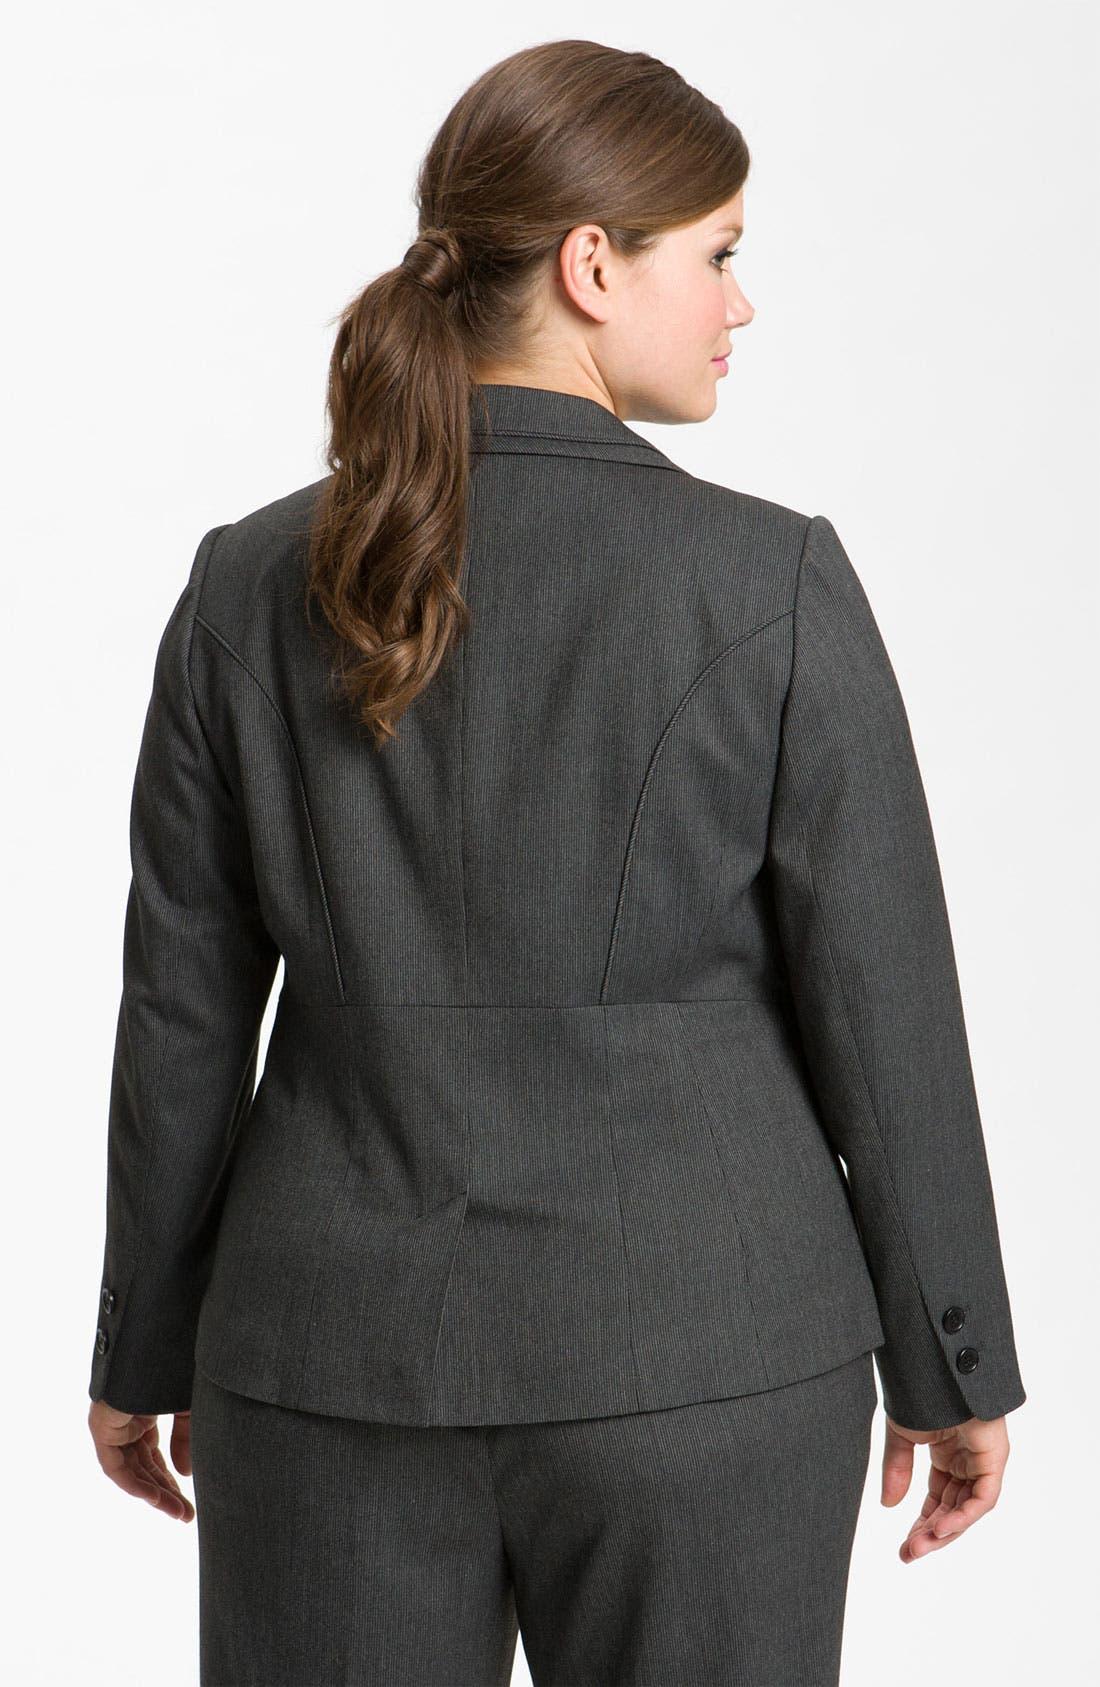 Alternate Image 2  - Sejour Tonal Trim Suit Jacket (Plus)